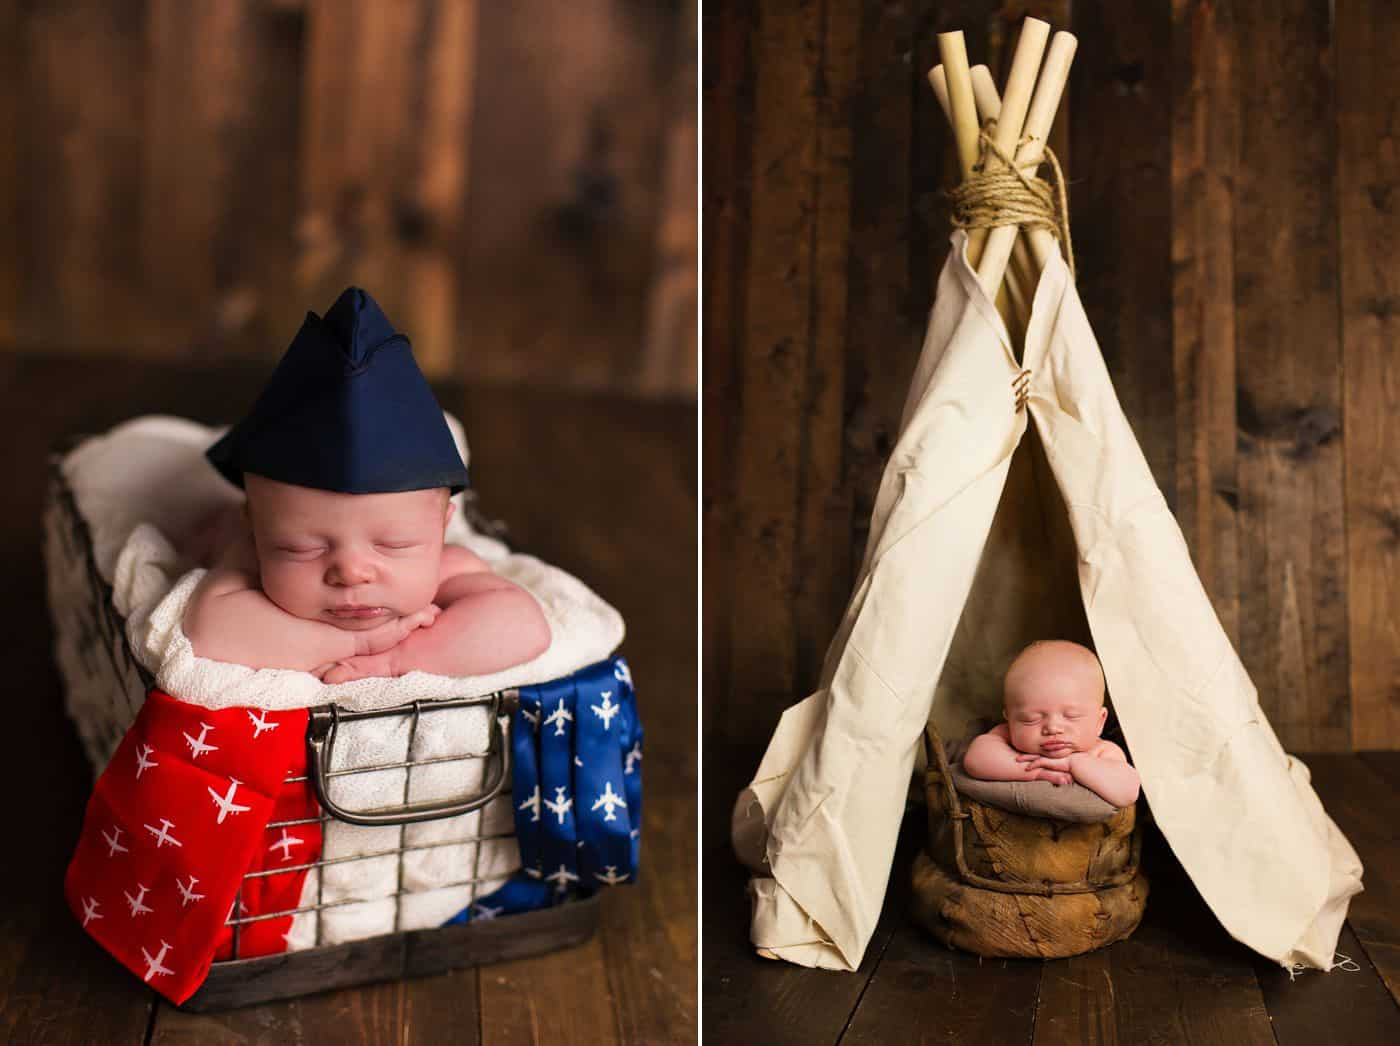 Newborn Props: How To Make Photos That Are Classy & Cute